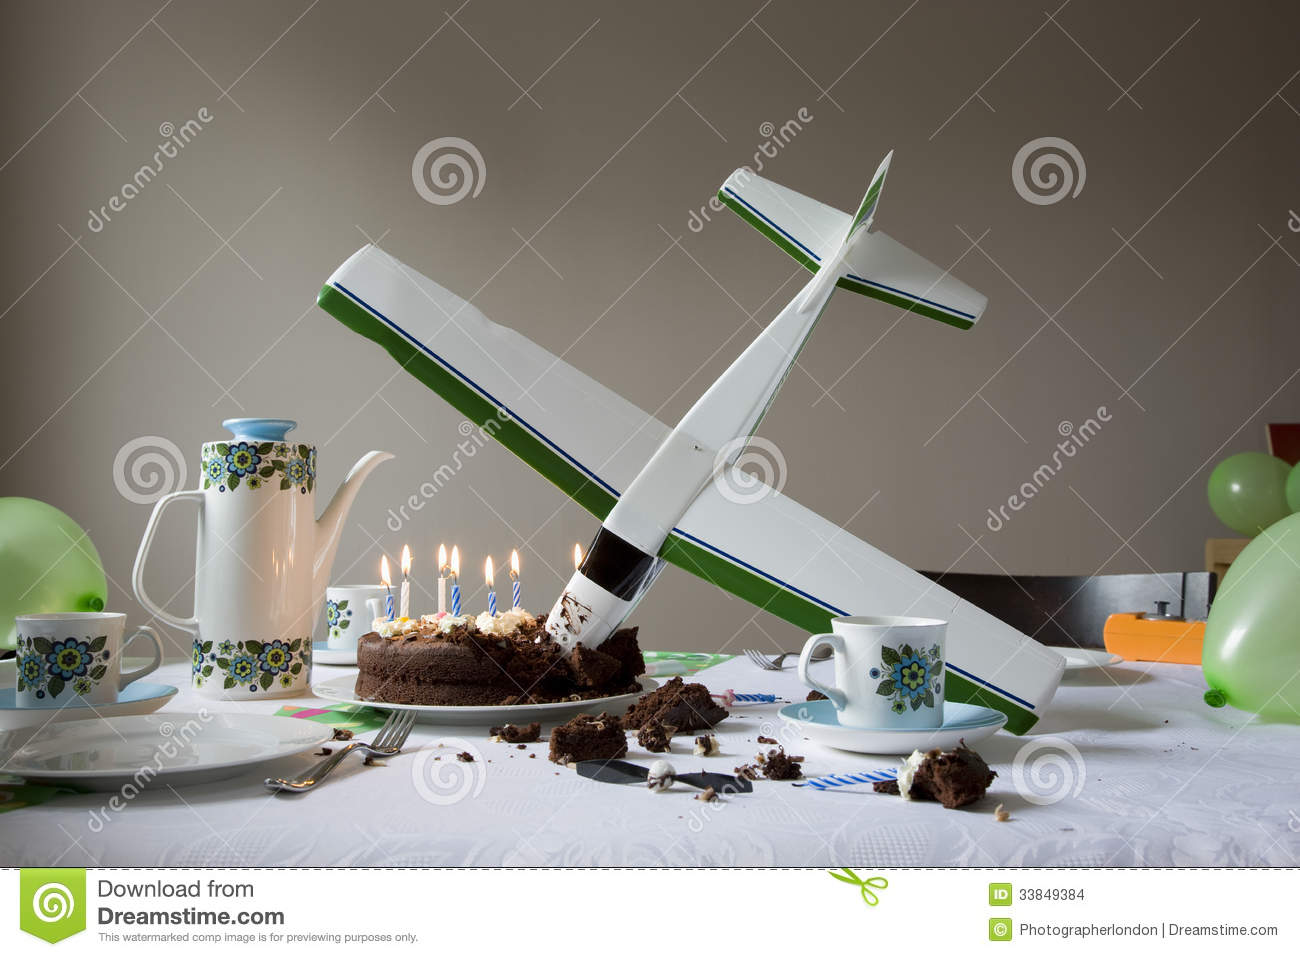 Coffee Table With Seats Model Airplane Into Birthday Cake Stock Photo - Image